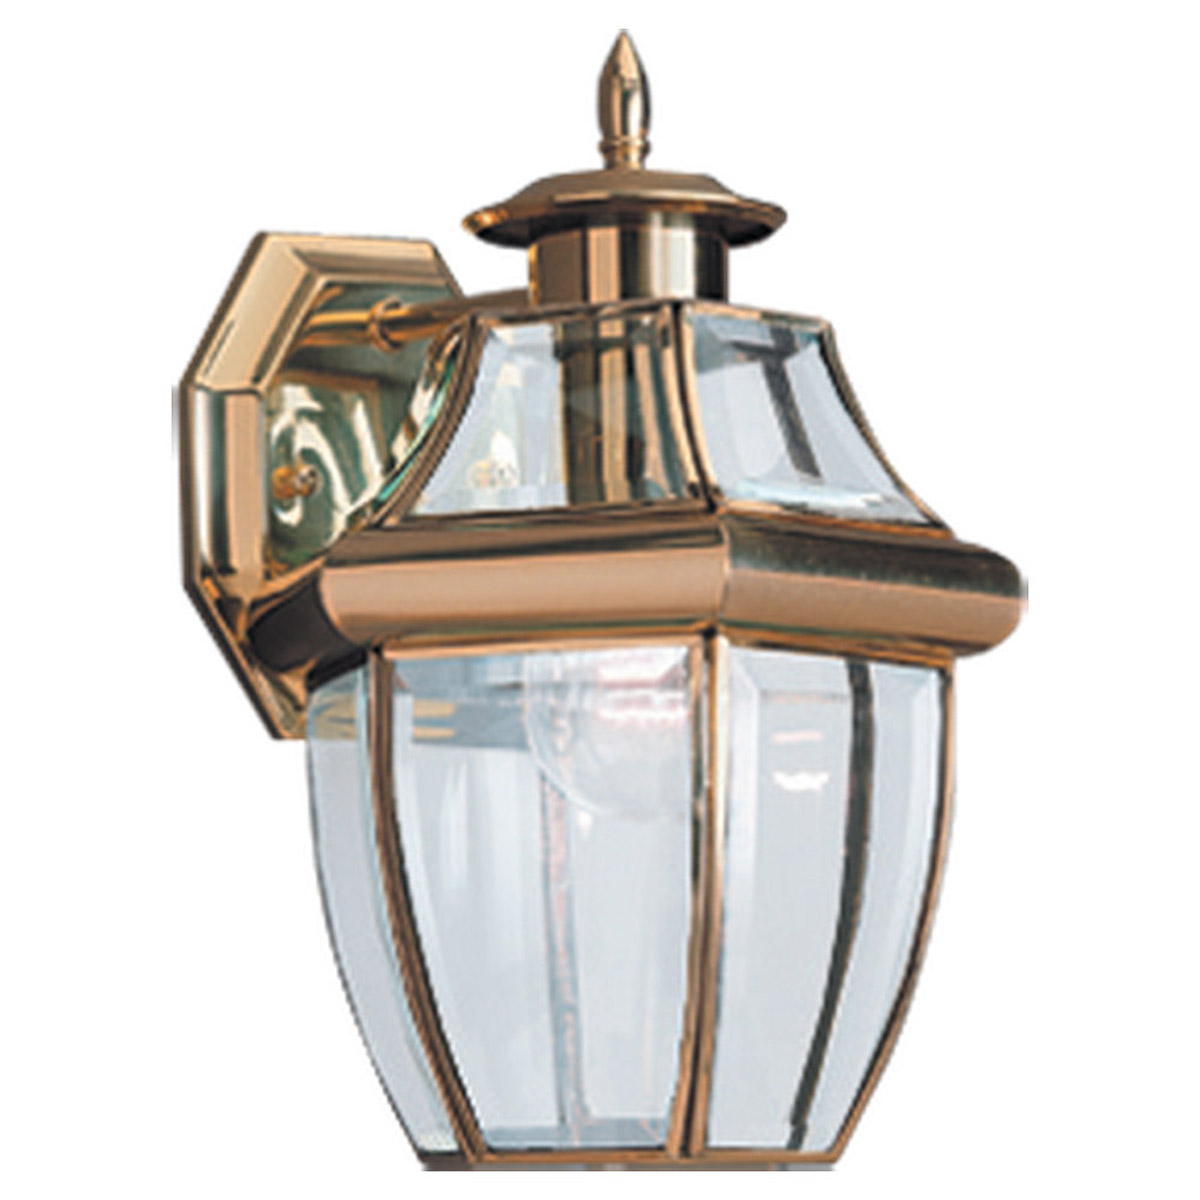 Sea Gull Lighting Lancaster 1 Light Outdoor Wall Lantern in Polished Brass 8038-02 photo